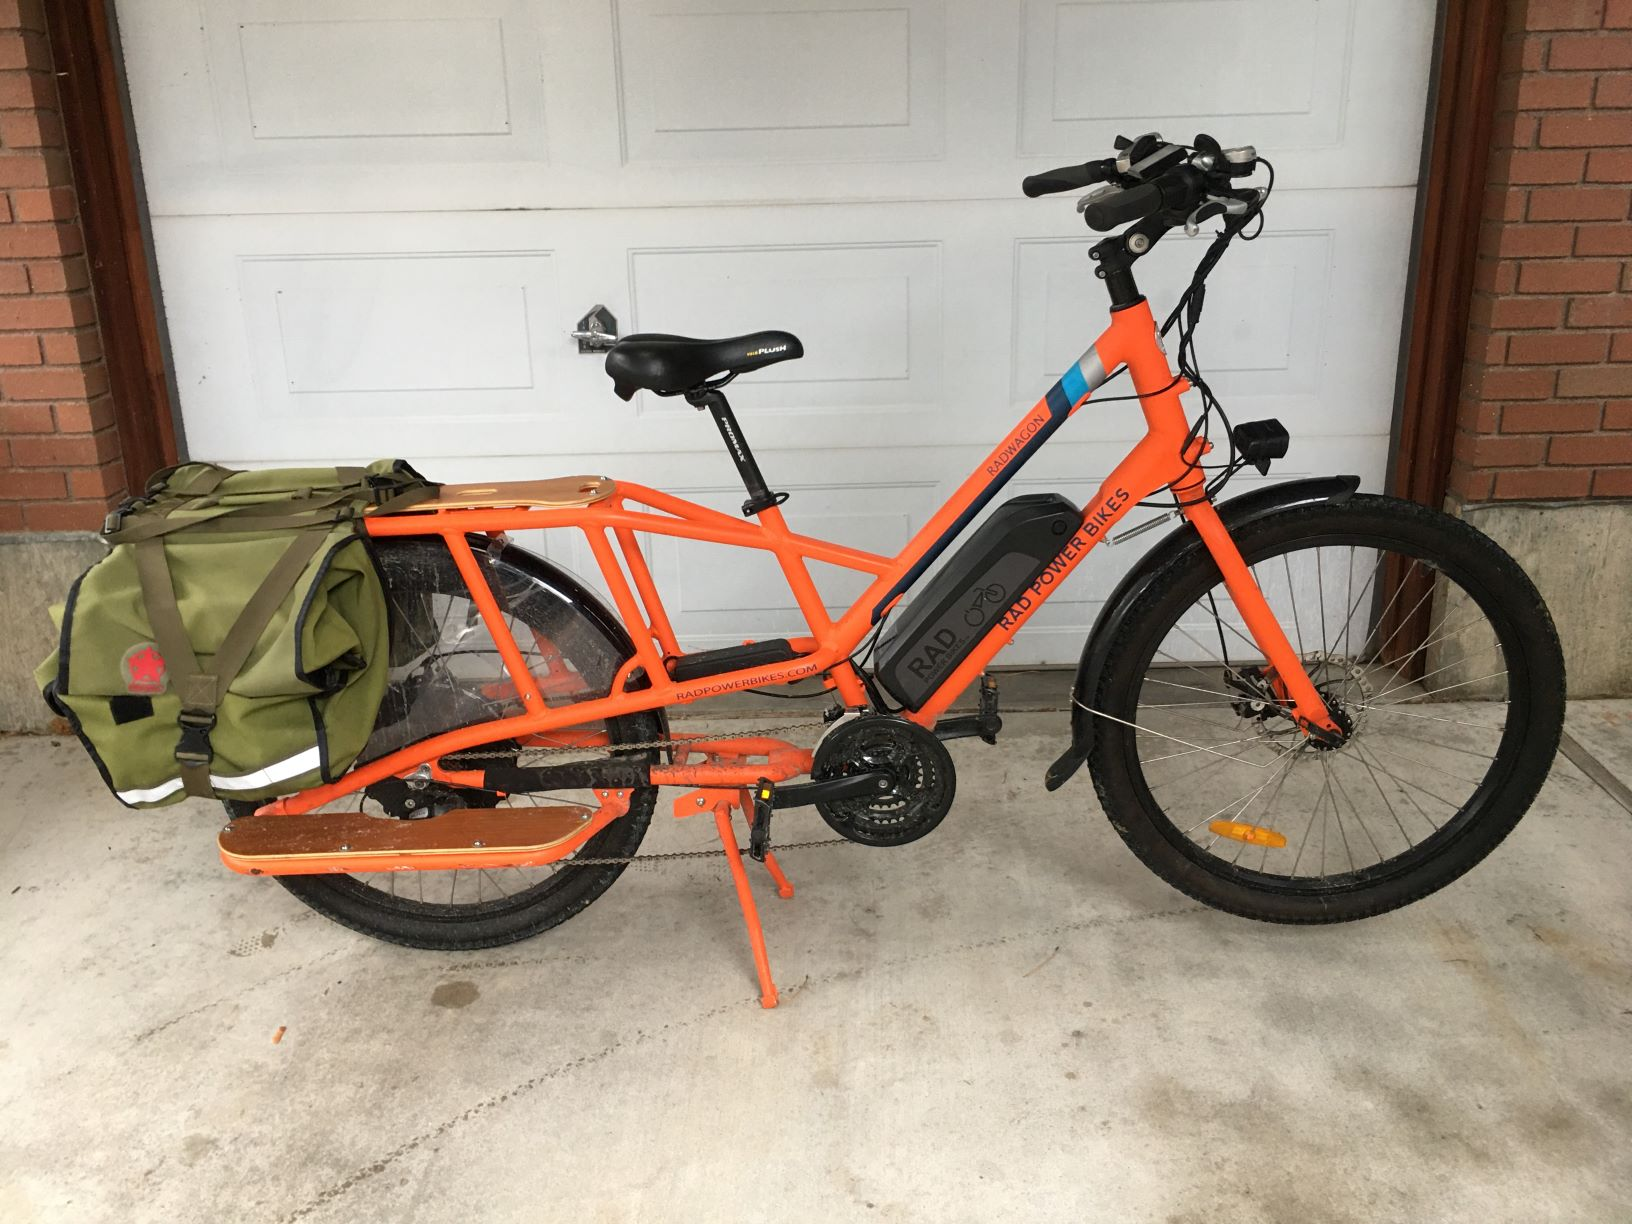 Radpower radwagon review